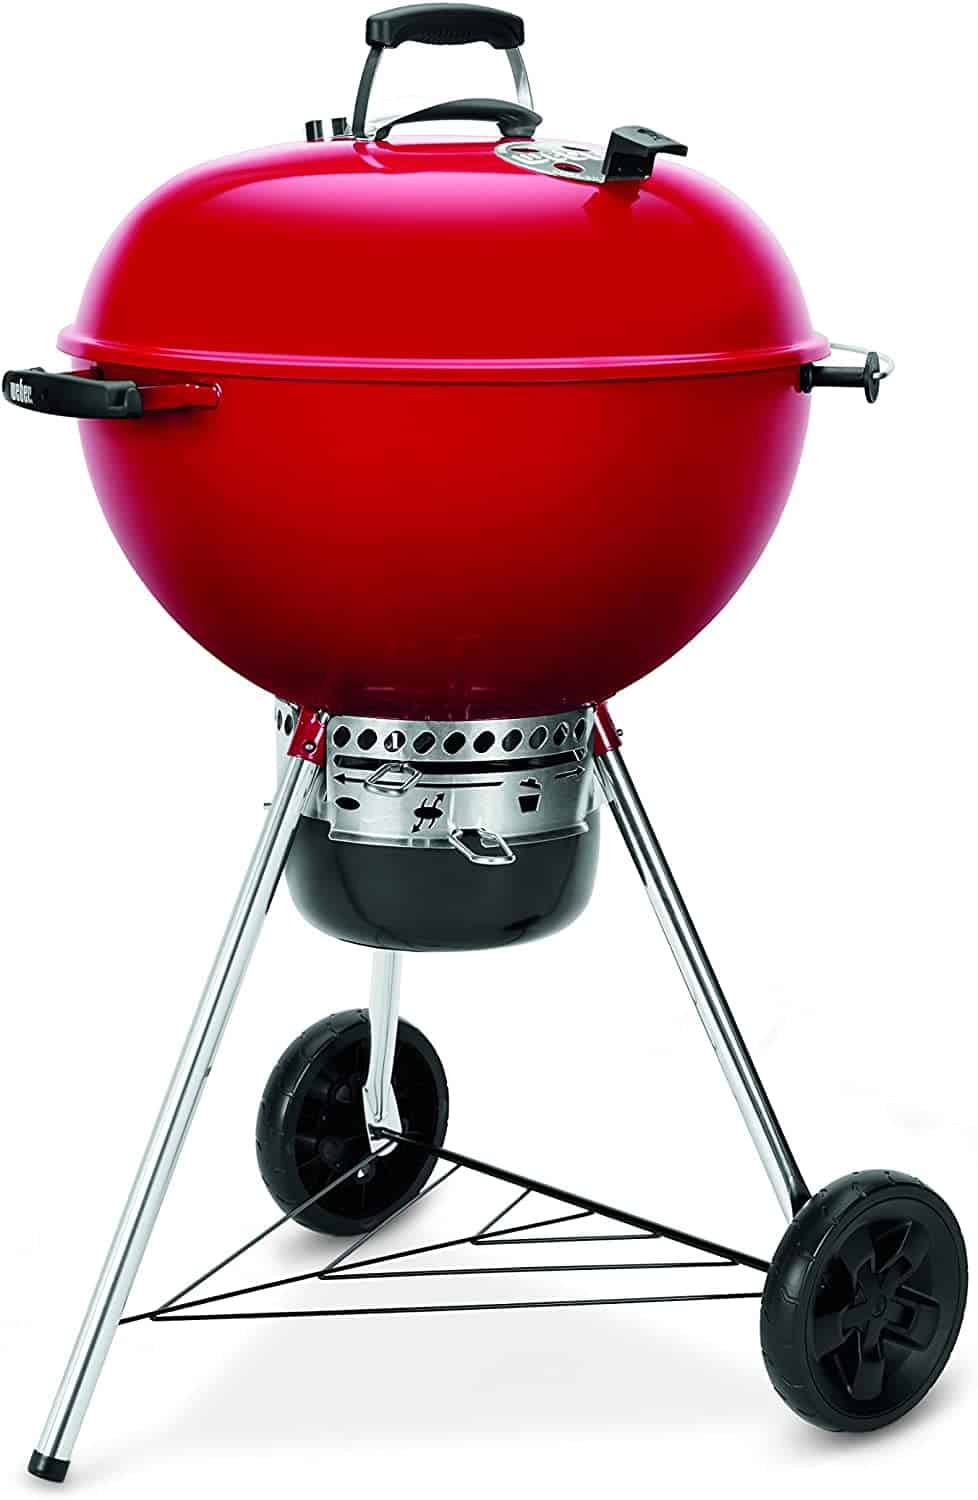 ,Weber 14615001 Original Kettle Premium Limited Edition Charcoal Grill